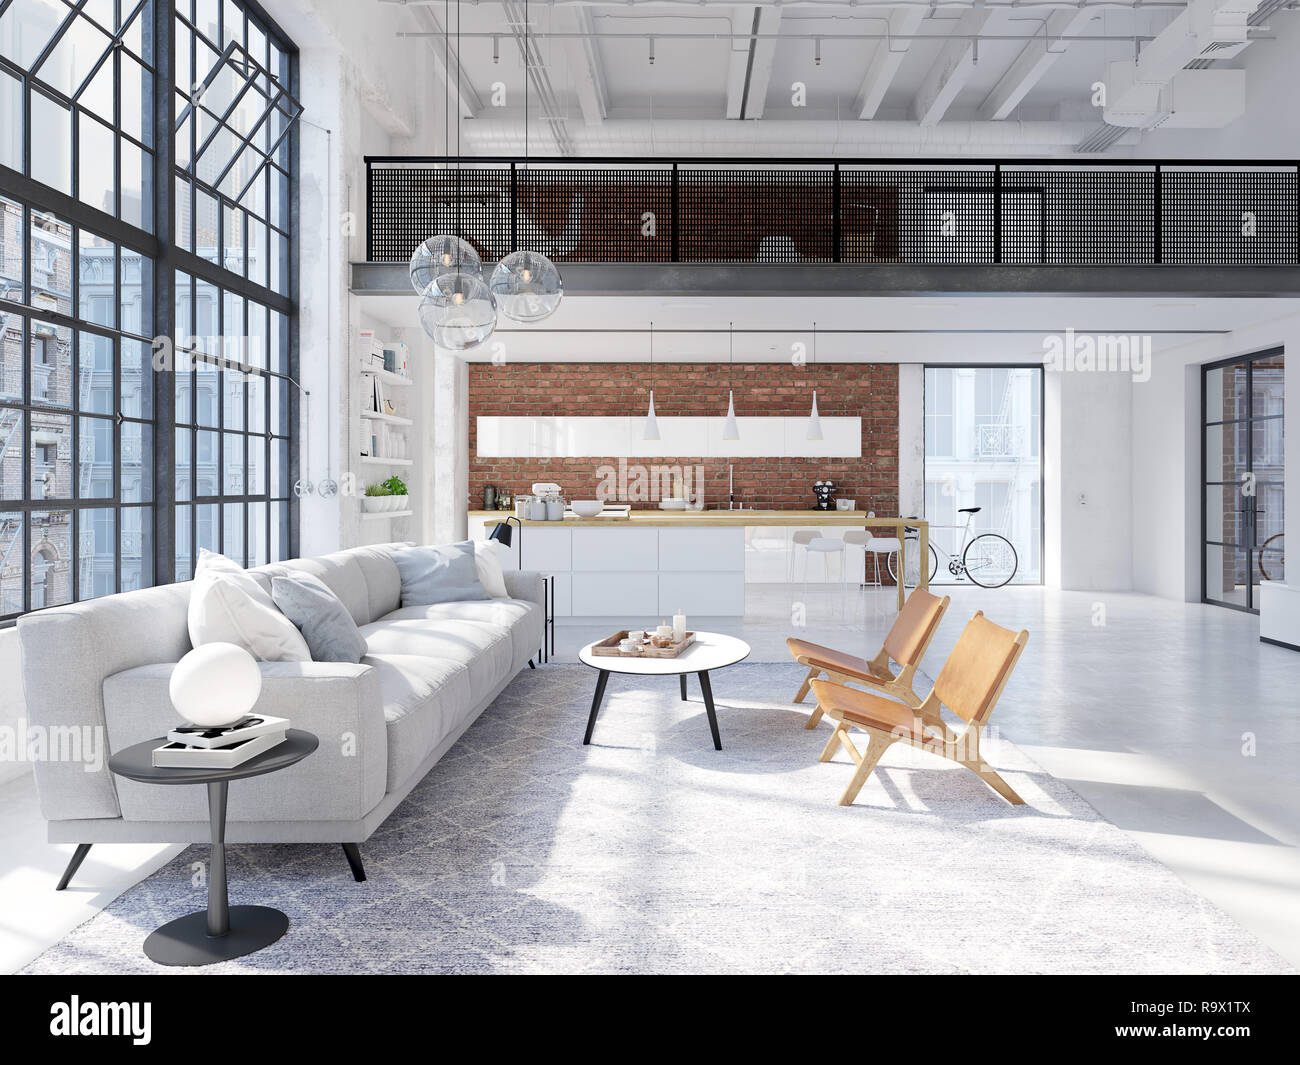 3d Rendering Loft Apartment With Living Room And Kitchen Stock Photo Alamy